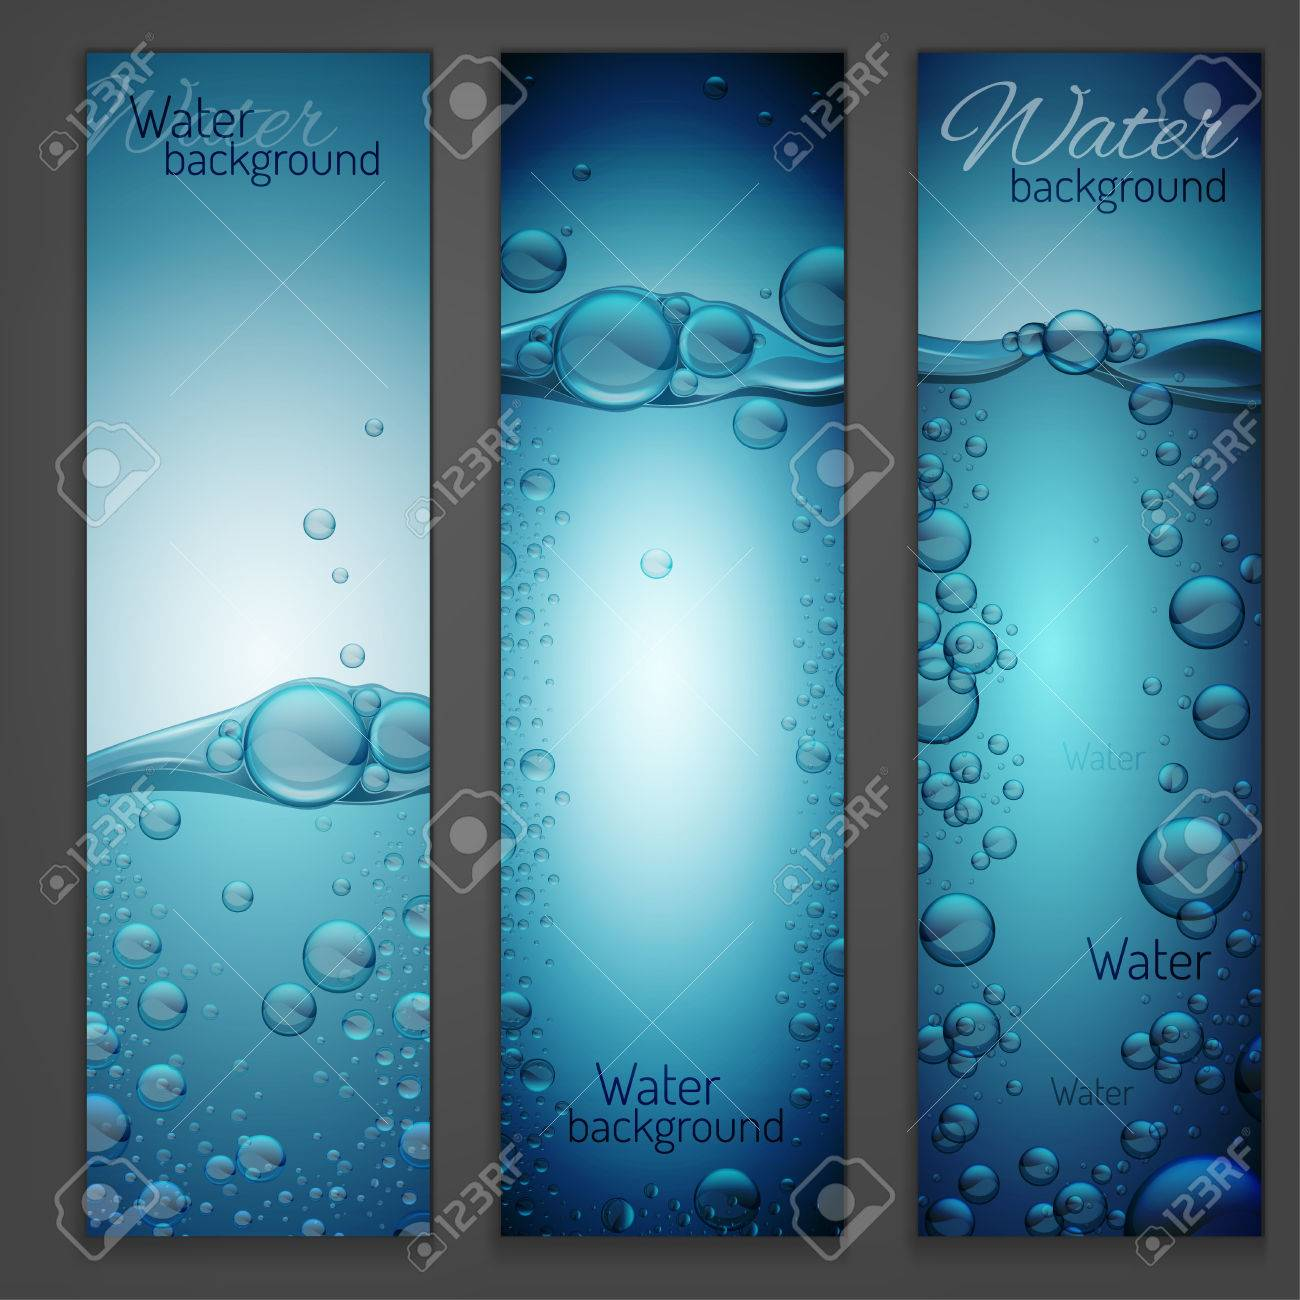 Beautiful Transparent Water Wave Image With Bubbles. Vector Illustration In Light Blue  Colours. Purity And Pictures Gallery